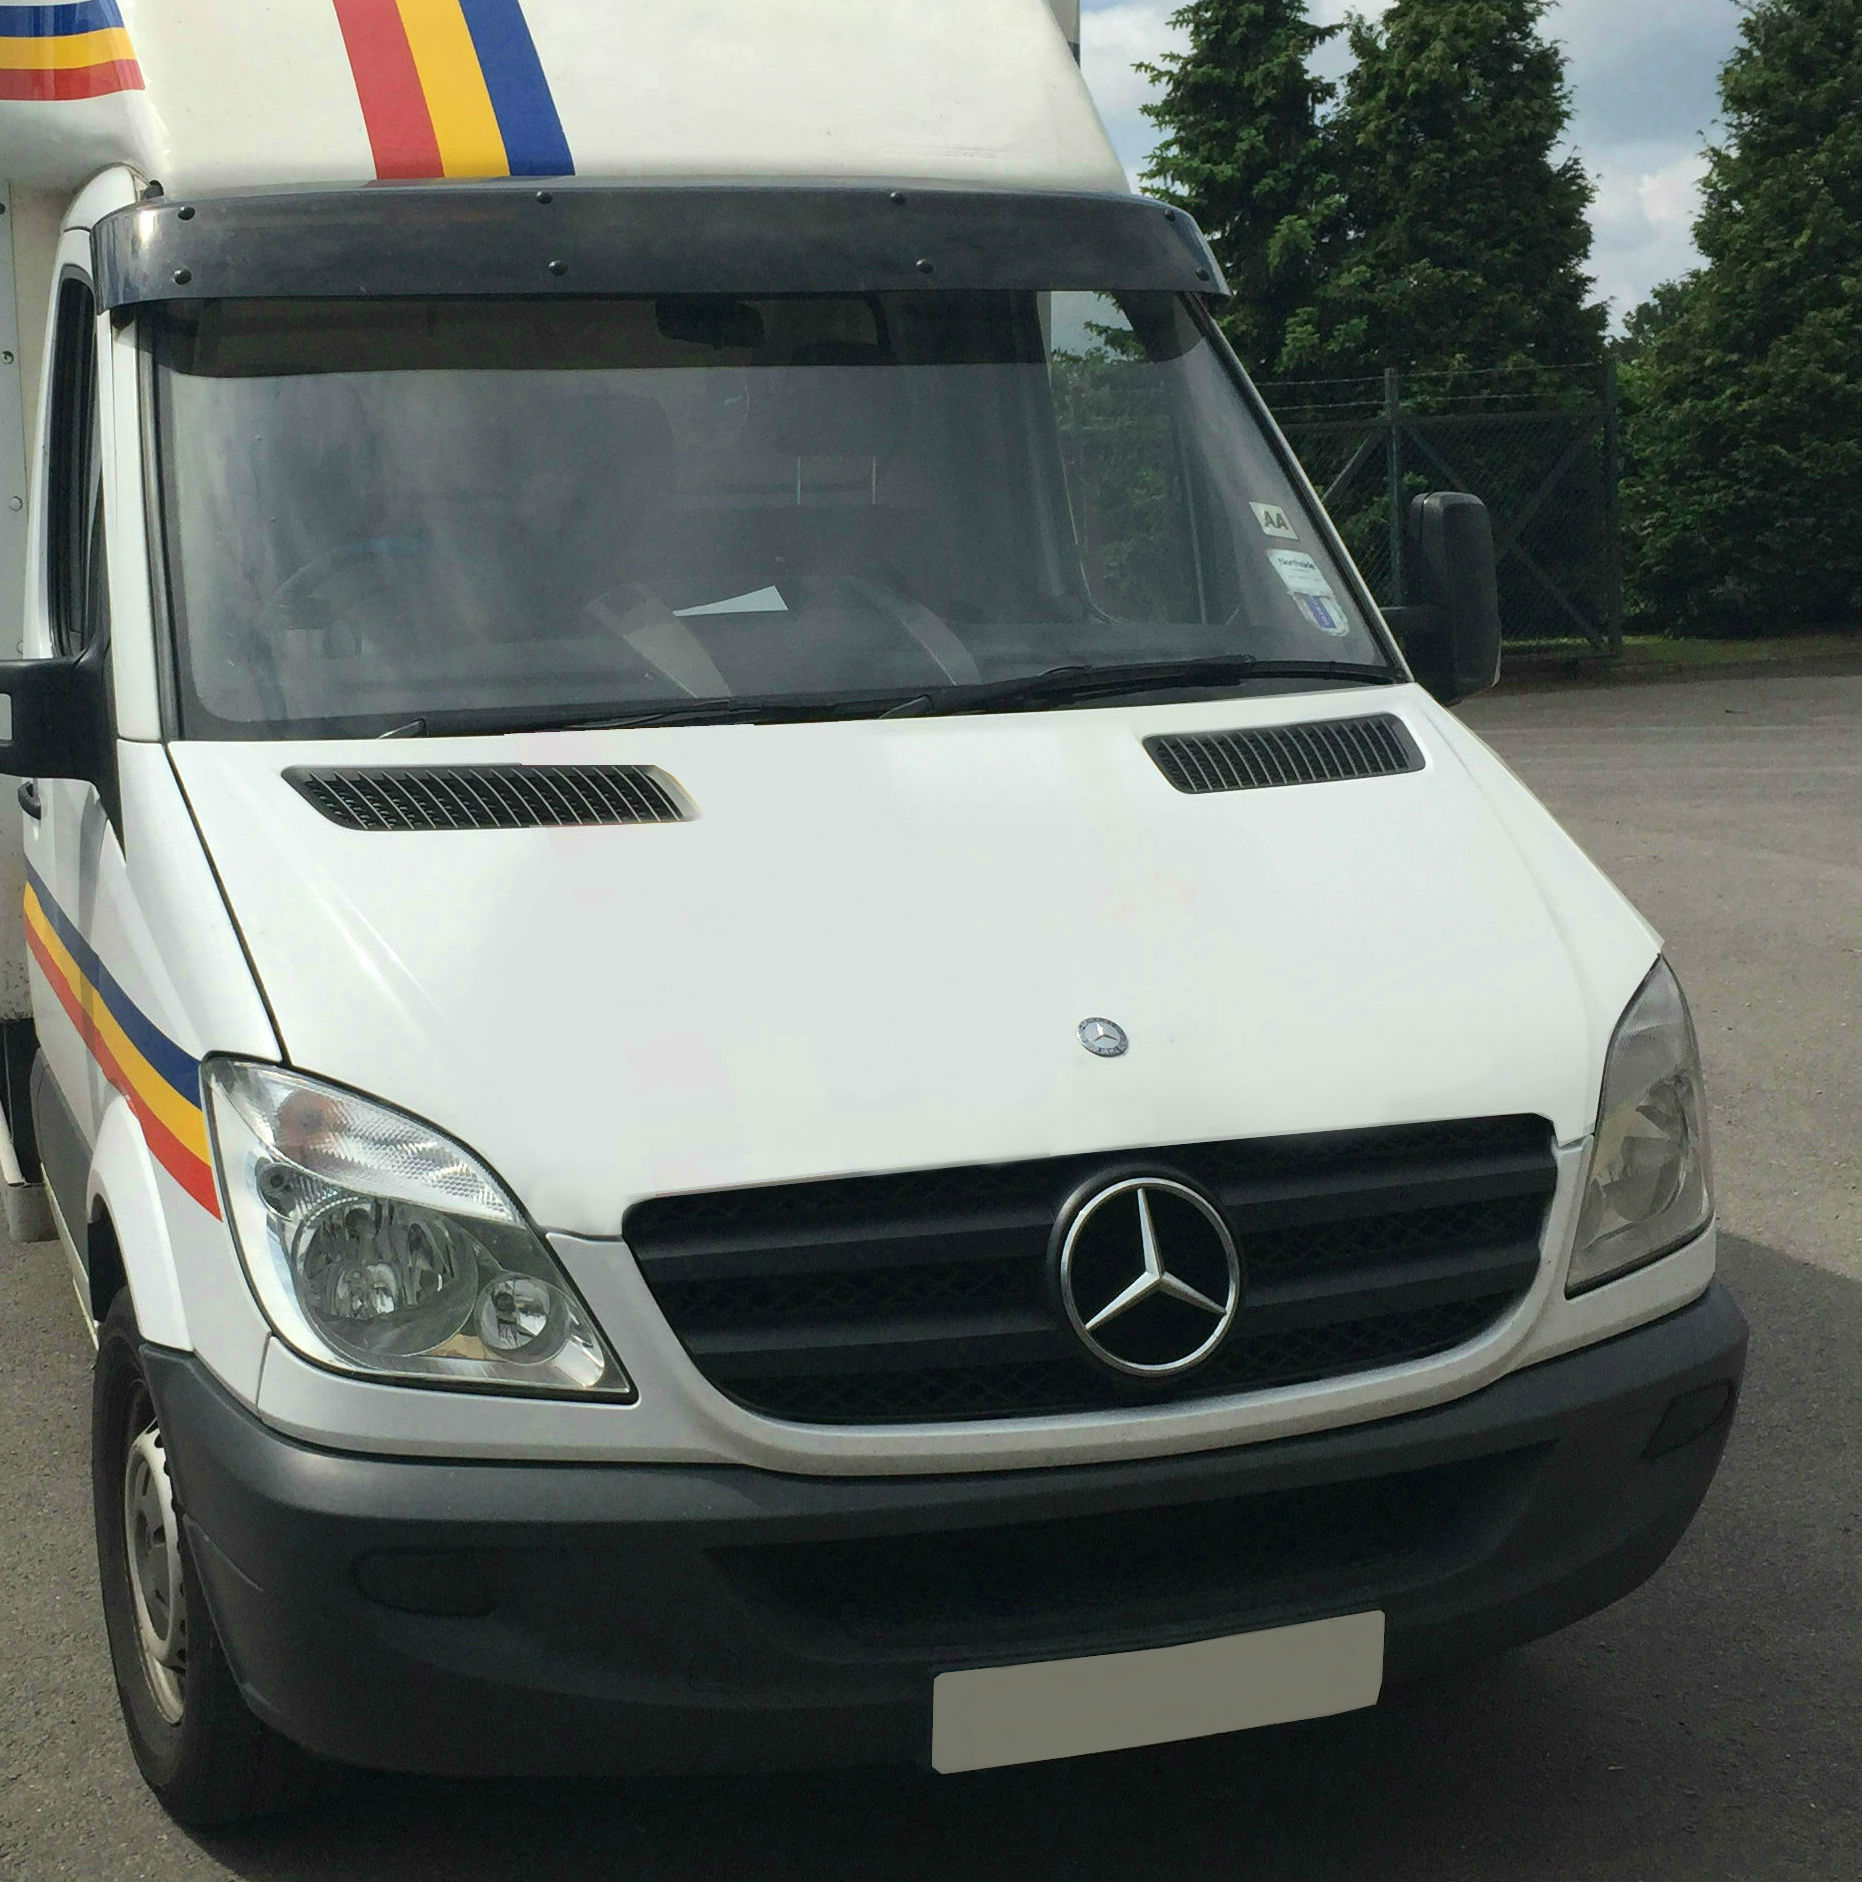 Details about Exterior Black Sun Visor Solid Acrylic Shield for Mercedes  Sprinter (2006 on) 35c04b4560c